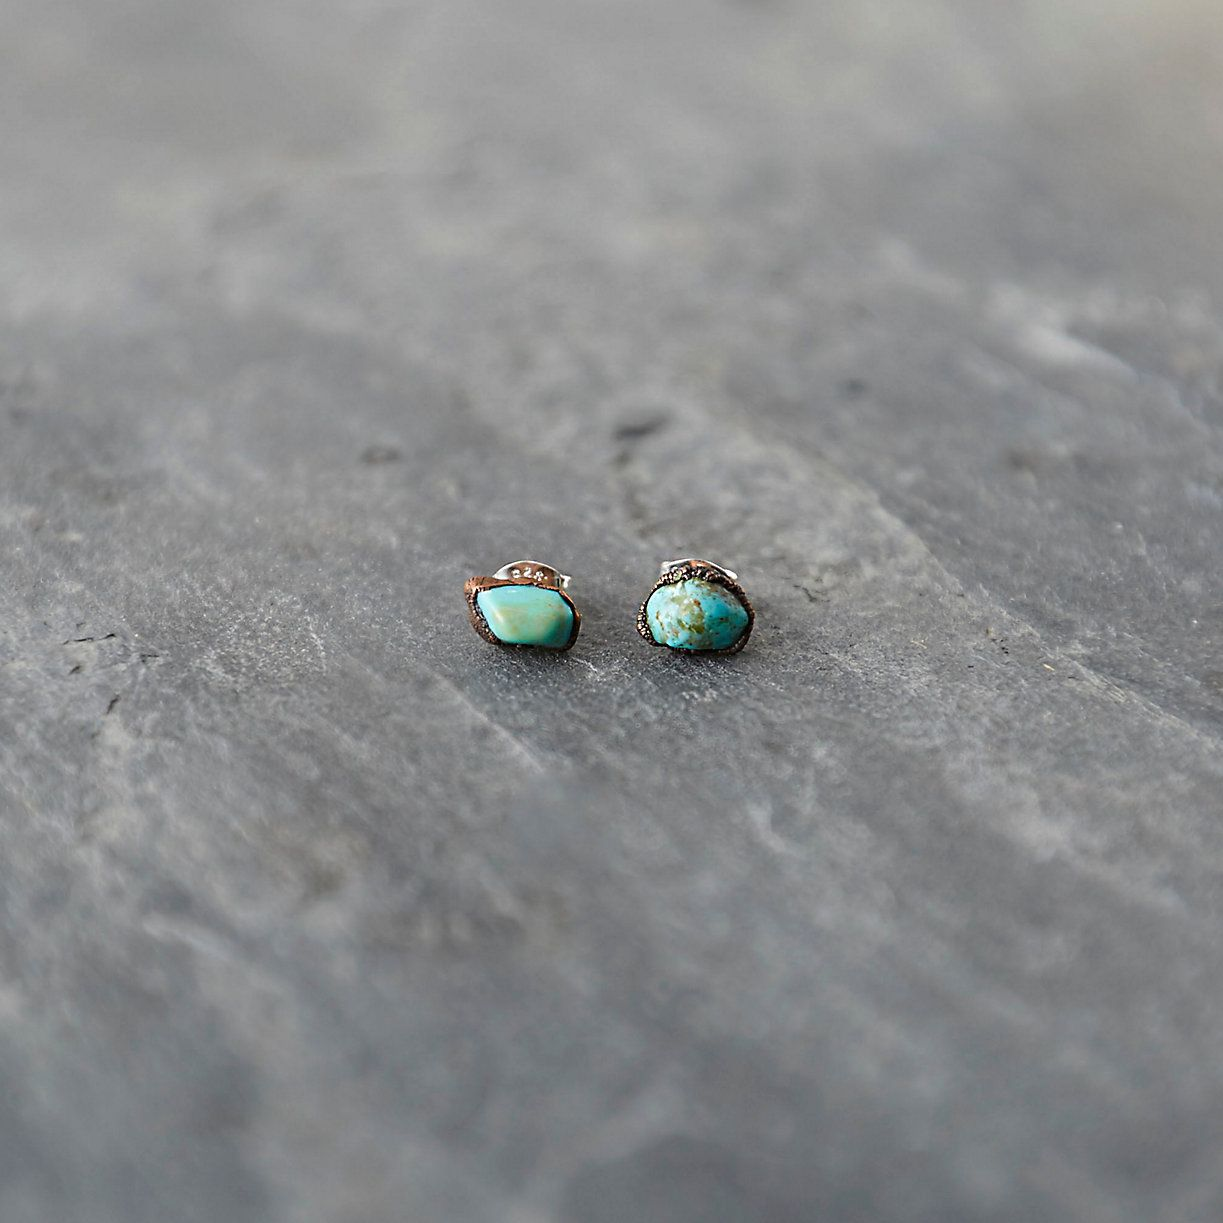 Turquoise Nugget Stud Earrings